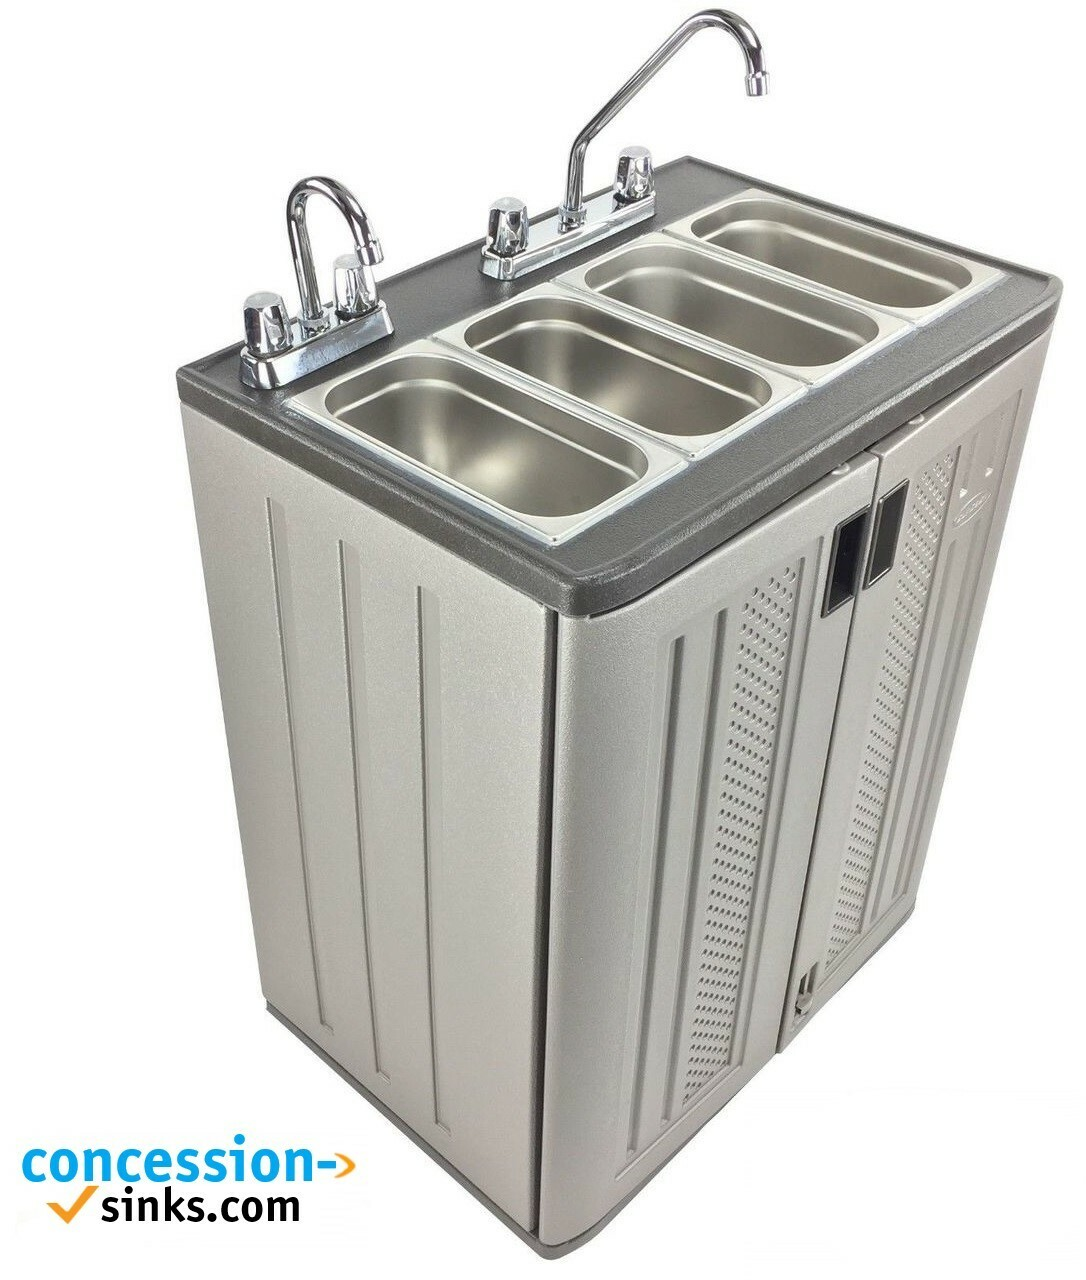 Mobile Concession Sink Portable Food Truck Trailer 4 Compartment Hand Wash Hot 35-0090